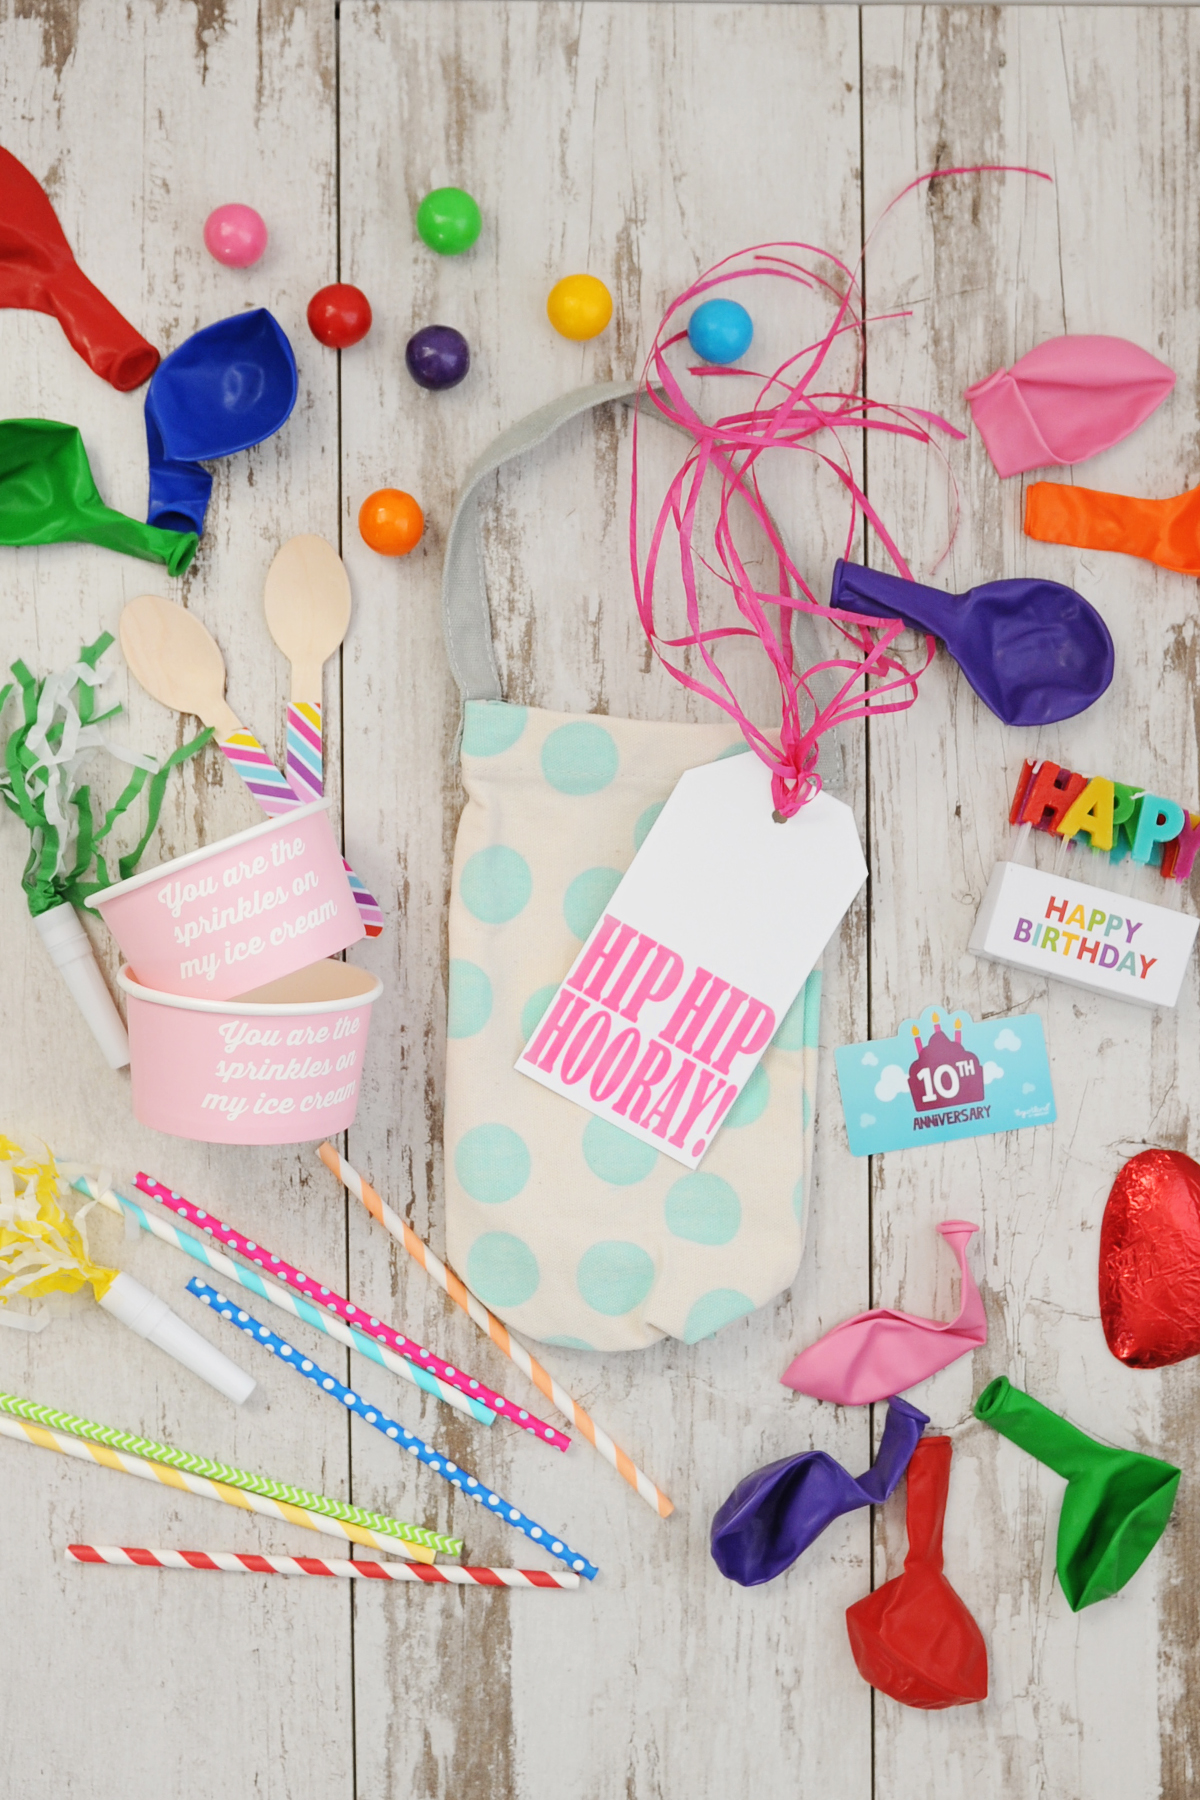 I Love This Easy Birthday In A Bag Its Such Cute DIY Gift That Can Be Made Few Minutes And Shipped Anywhere Without Costing Ton Because